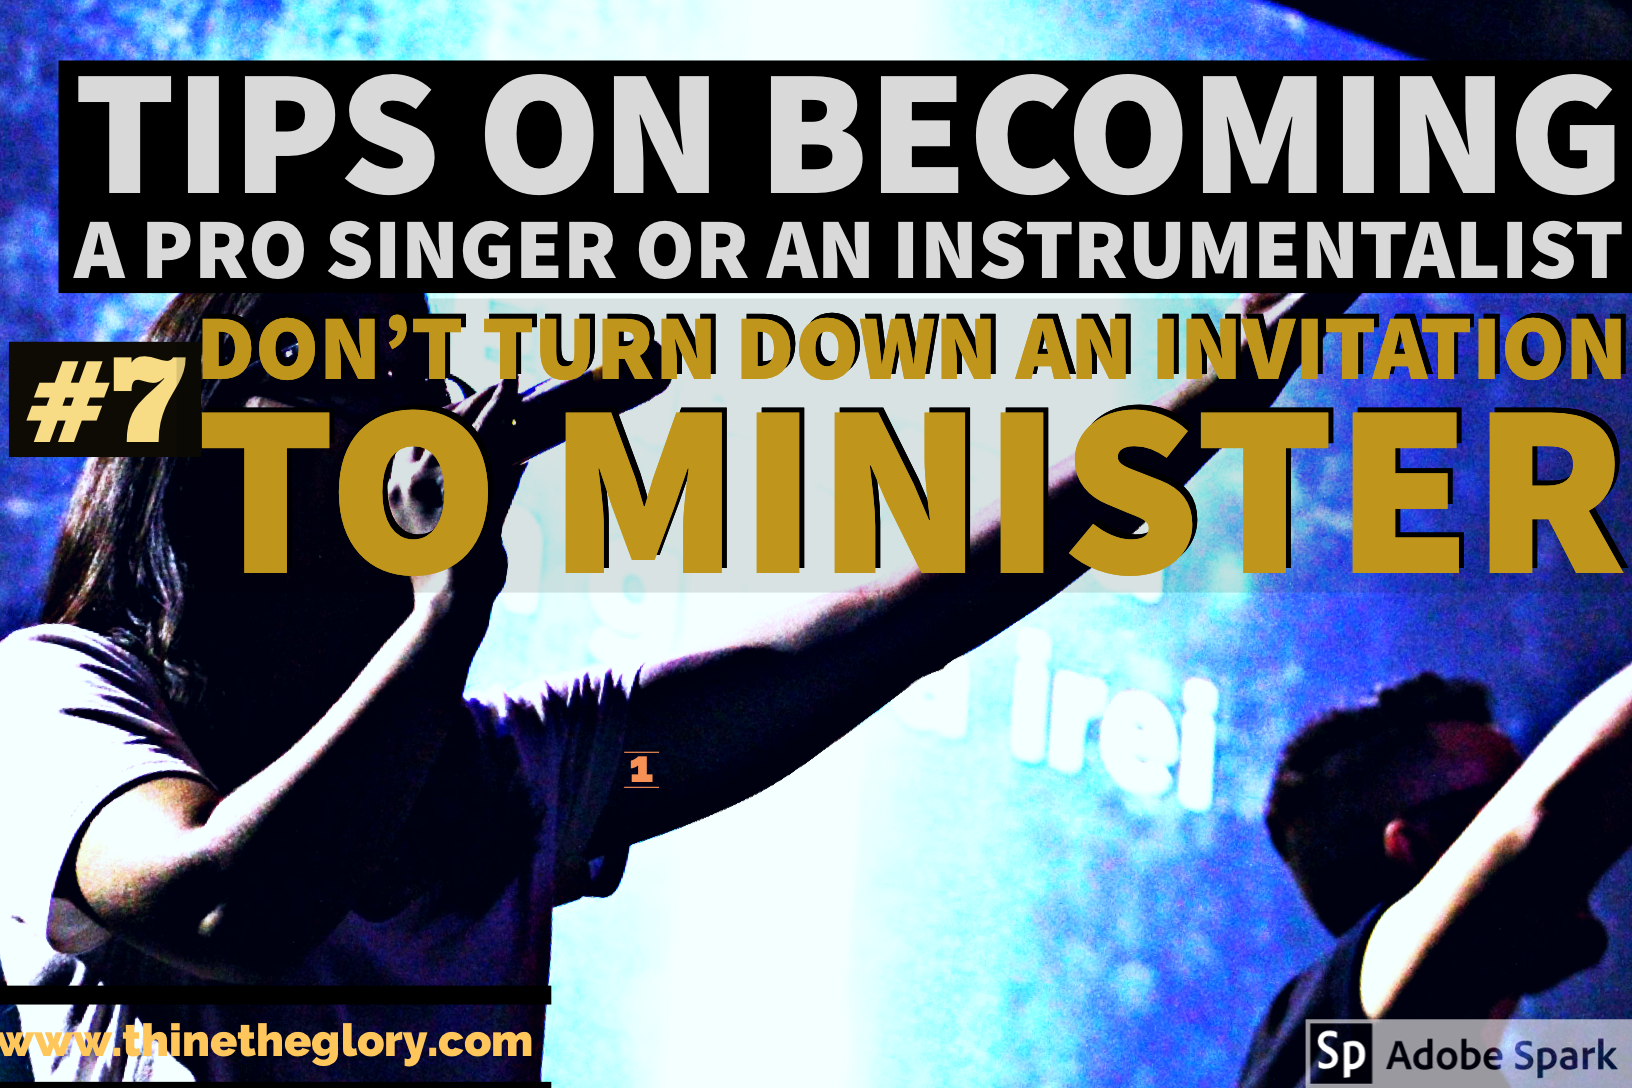 #7 TIP ON HOW TO BECOME A PROFESSIONAL SINGER OR AN INSTRUMENTALIST